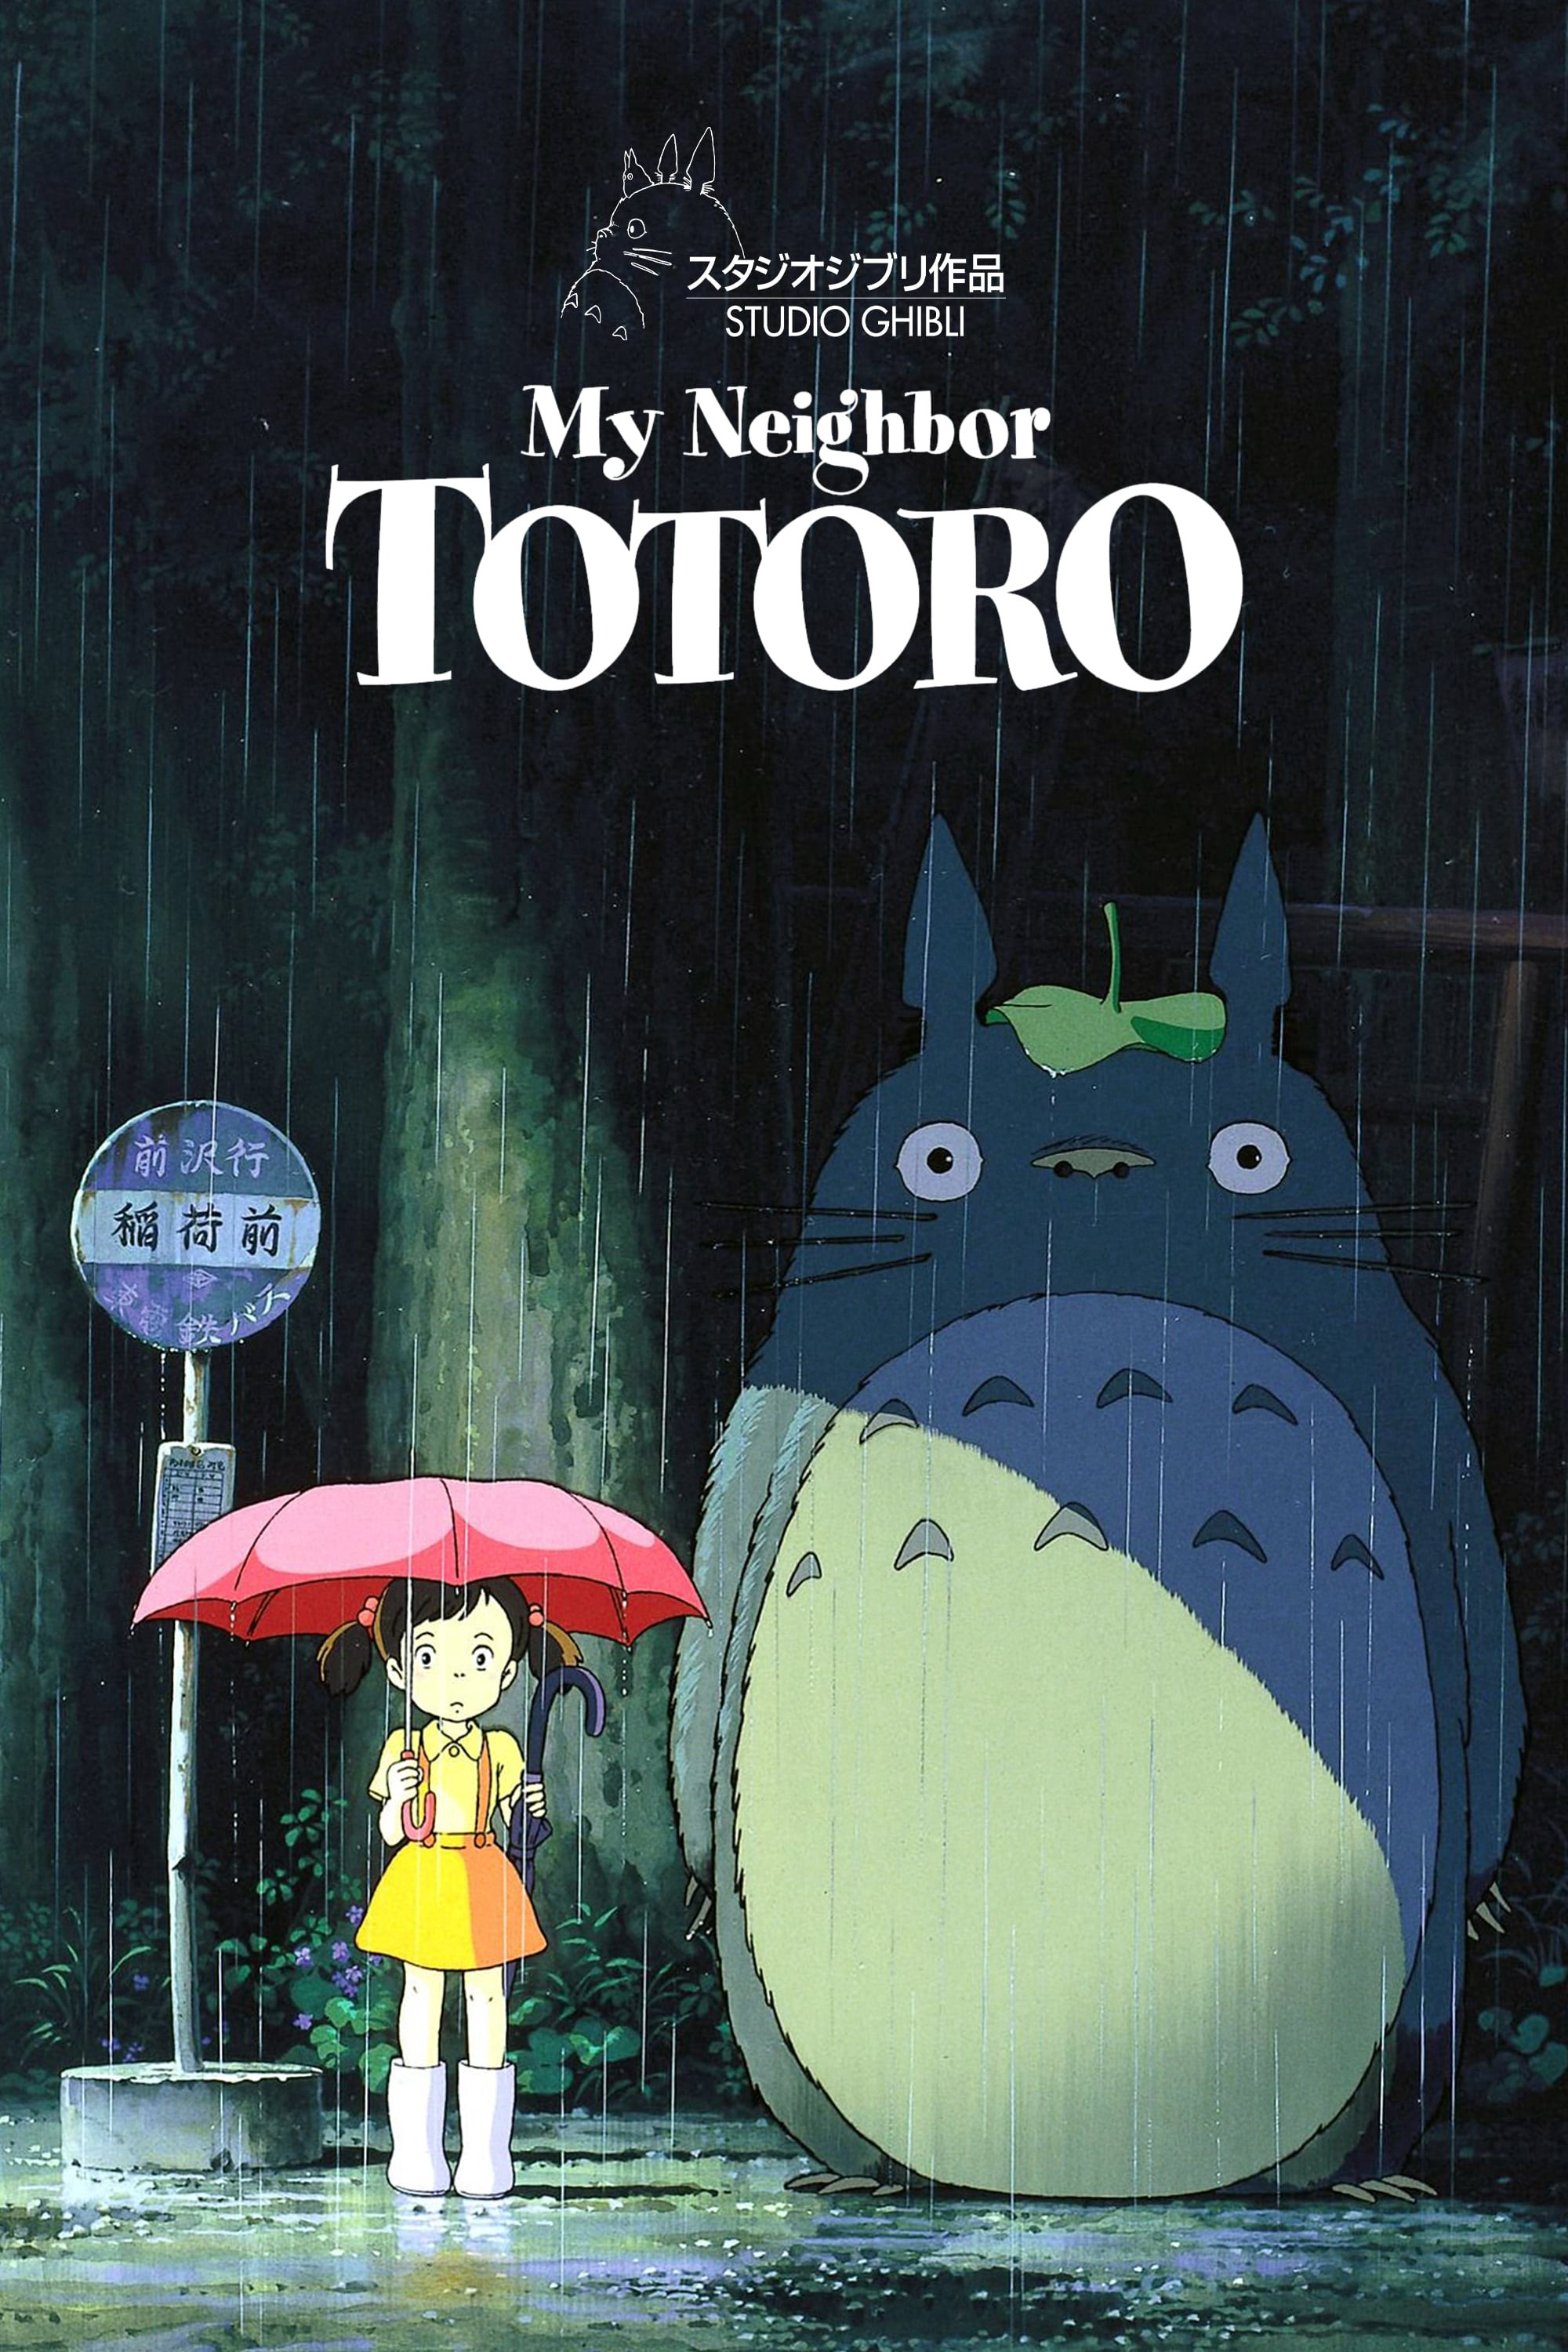 watch my neighbor totoro online for free